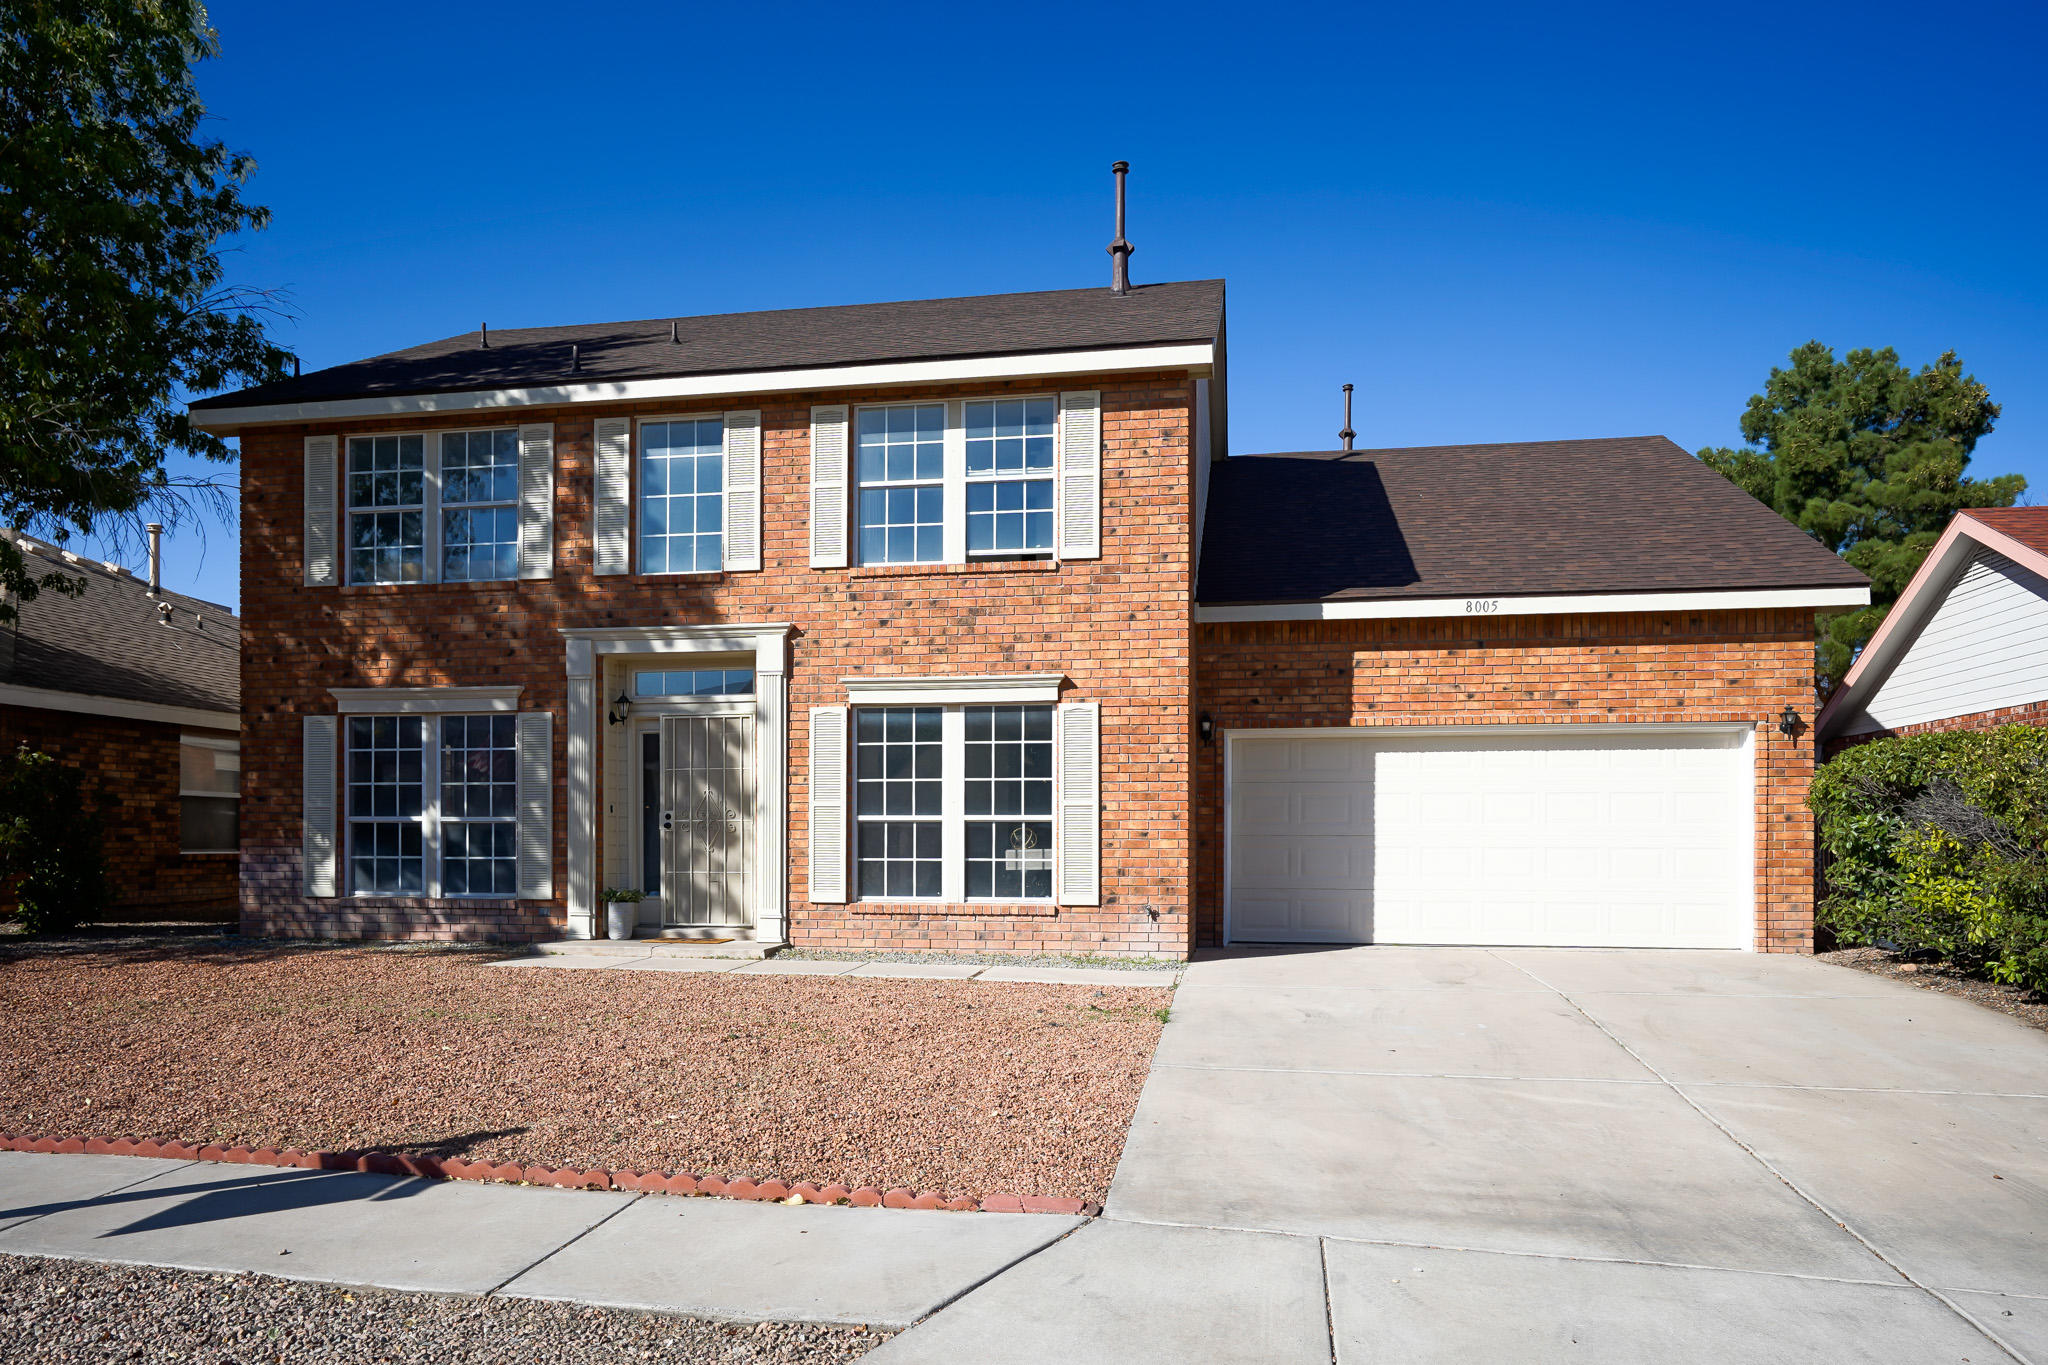 Welcome To This Beautiful Brick Veneer Four Bedroom Two Bathroom Thomas Sivage Home.  The Home Boasts The Perfect Chefs Kitchen With Brand New Stainless Appliances, Granite Counter Tops, Oiled Bronzed Finishes and Large Pantry.  This Home Also Has Formal and Informal Dining, Two Living Rooms and An Oversized Back Yard.  Each Bedroom Is Oversized To Fit Your Needs.  Don't Forget The BRAND NEW ROOF!  Don't Miss Out On Owning The Perfect Home For You!